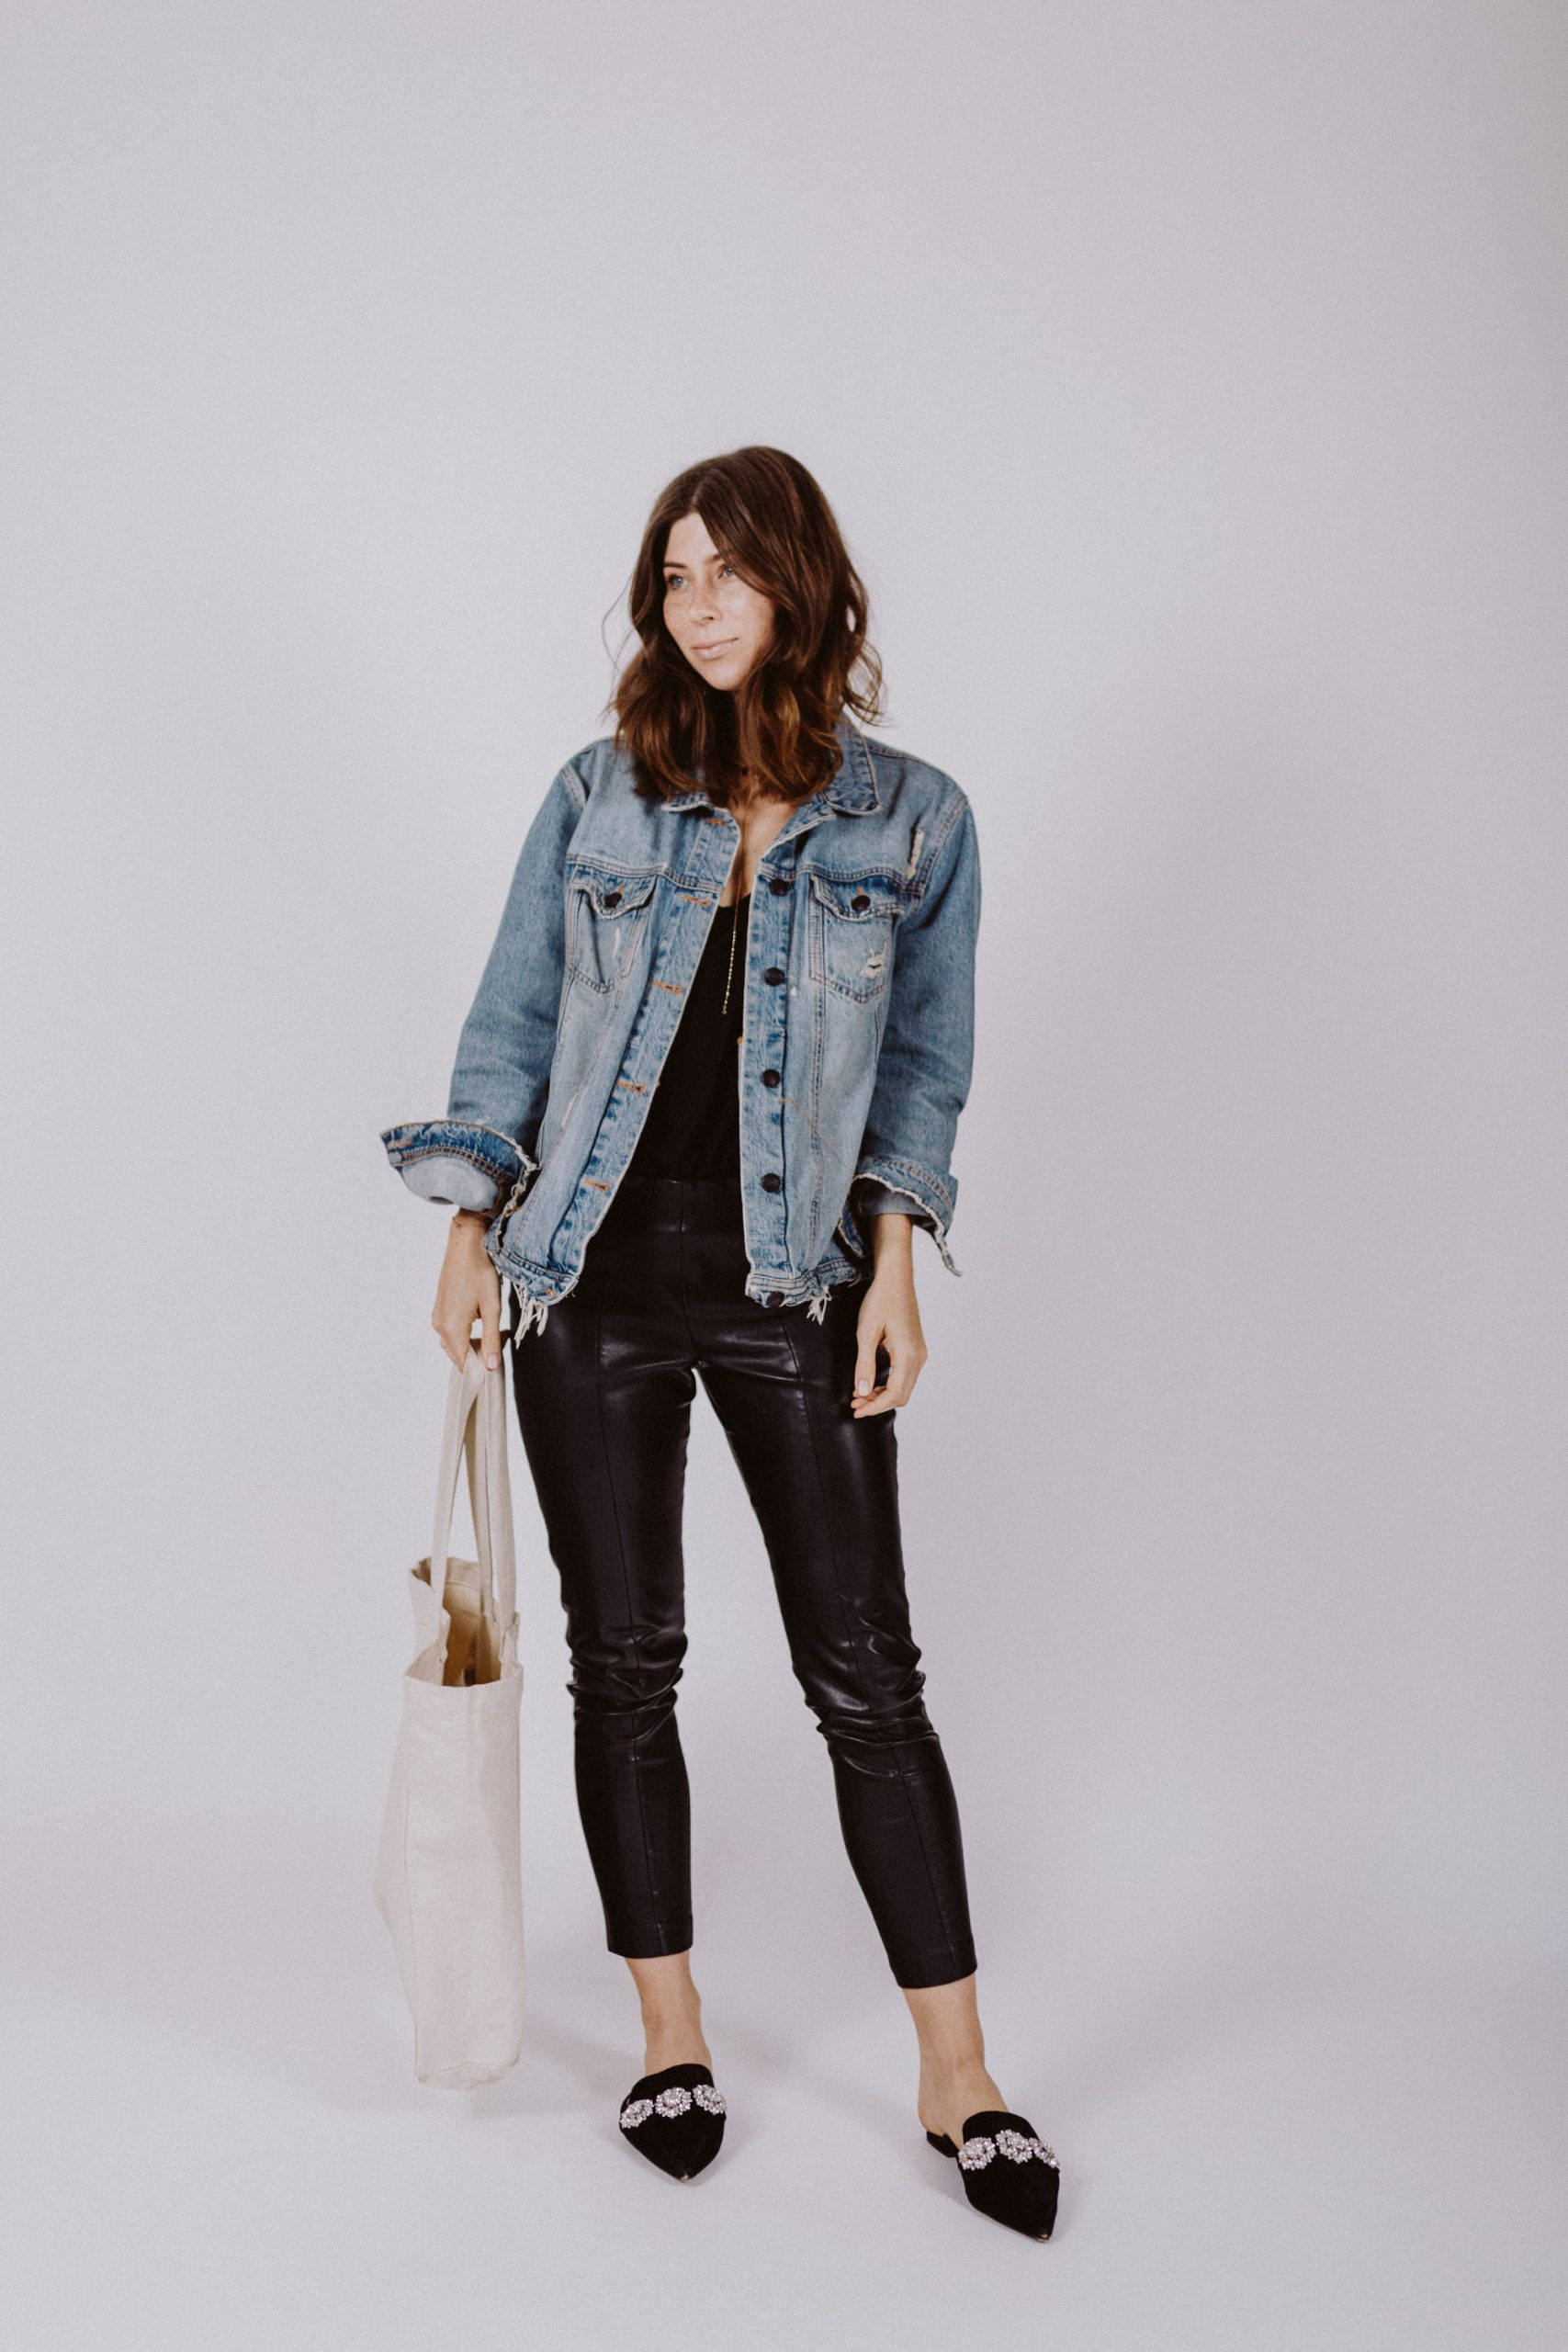 59b97a1ecf91e 3 Ways To Wear: The Oversized Denim Jacket | The Daily Dose | Bloglovin'